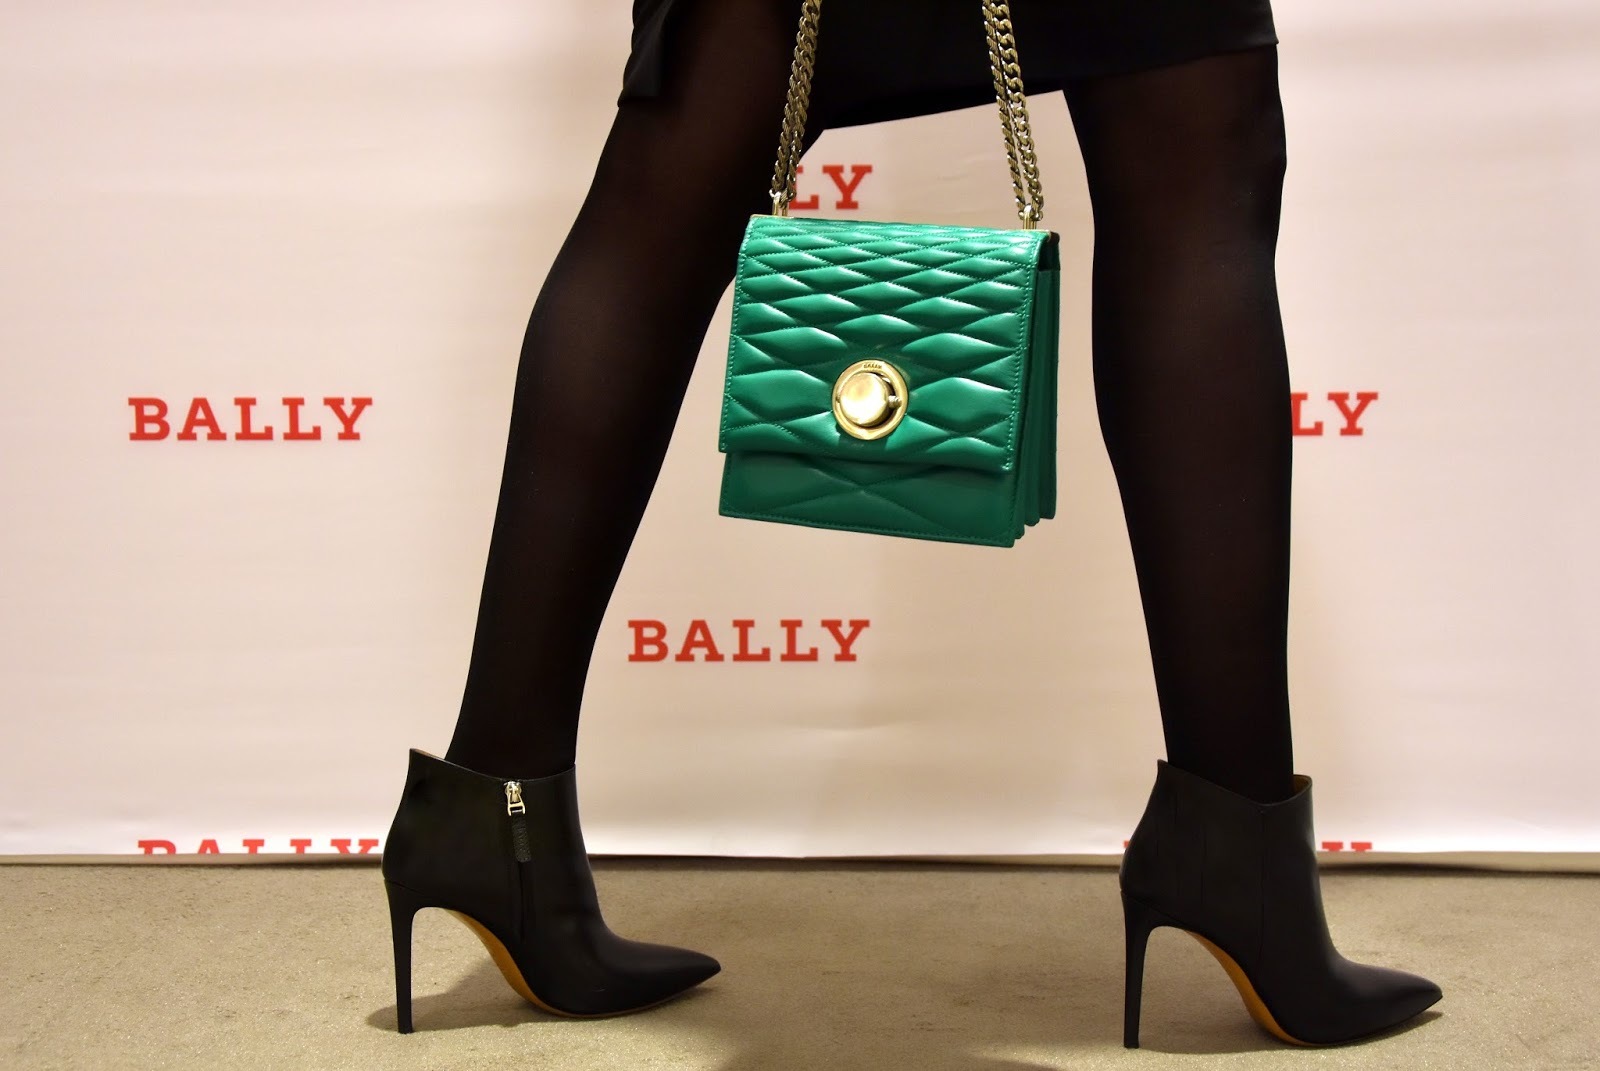 Bally Shoes